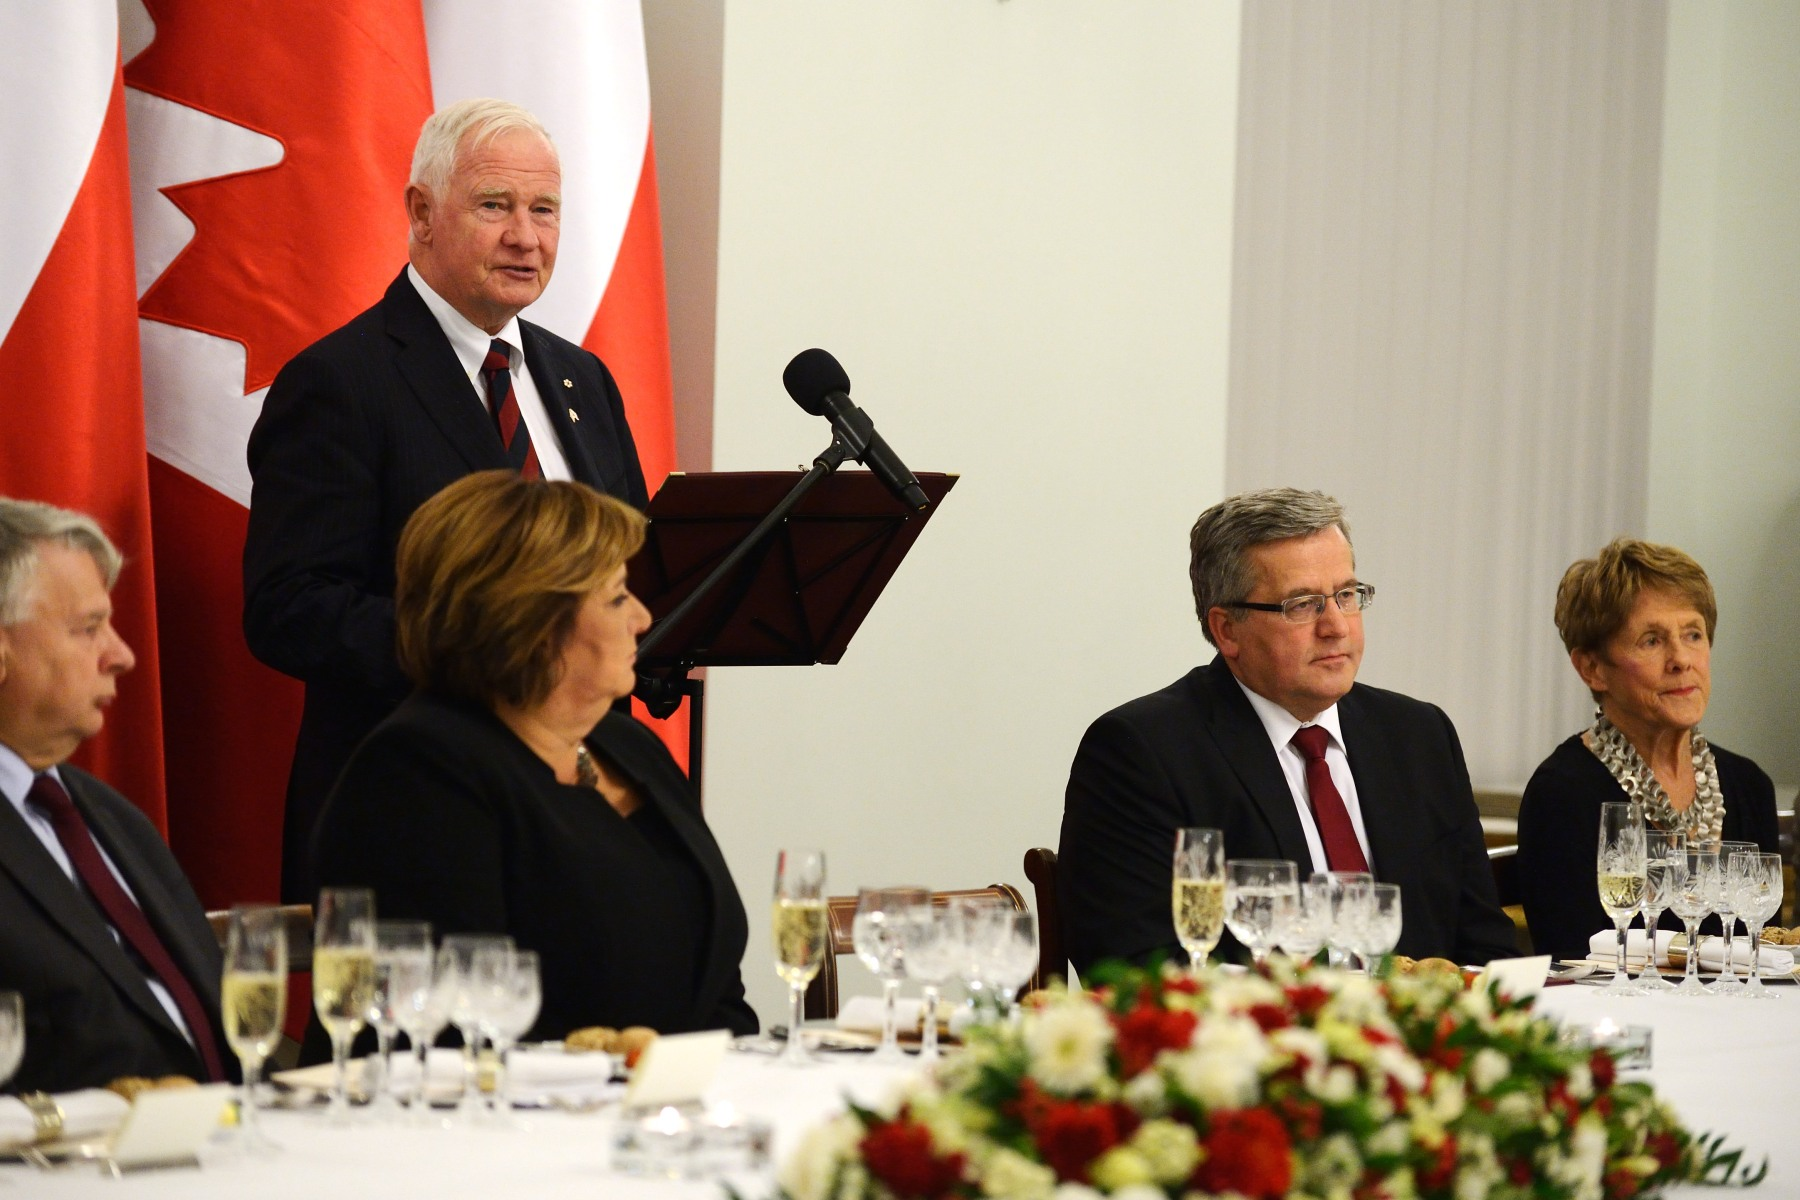 Their Excellencies and Canadian delegates took part in a State dinner hosted by the President and First Lady of Poland, in honour of their visit to the country.